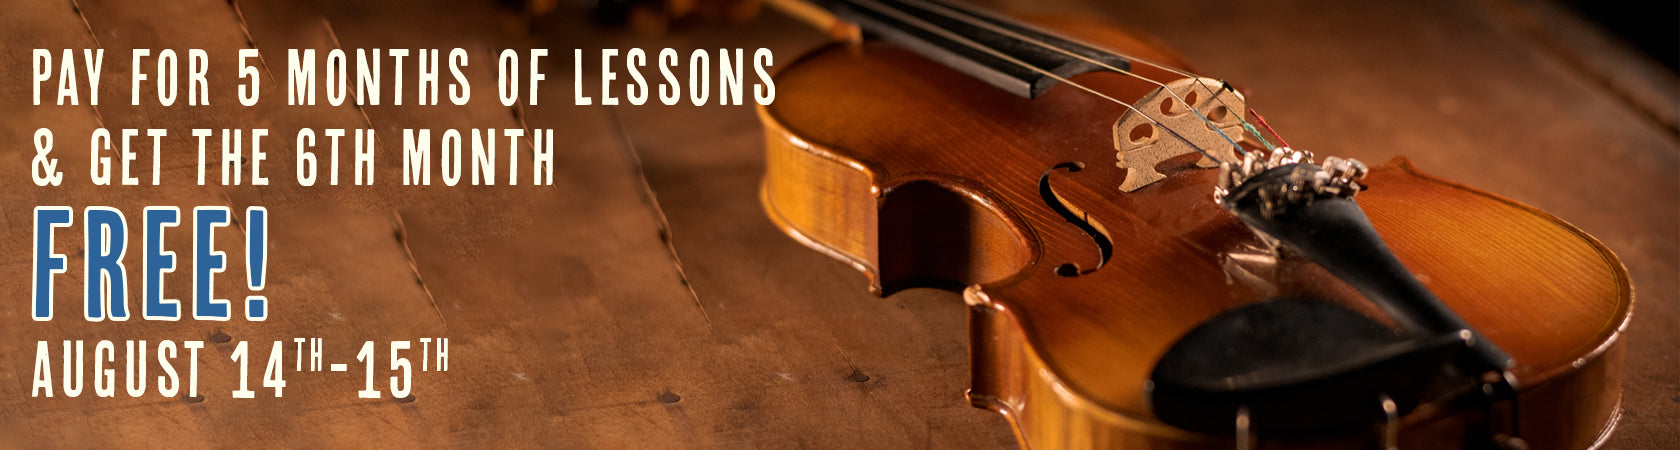 Discounted Lessons